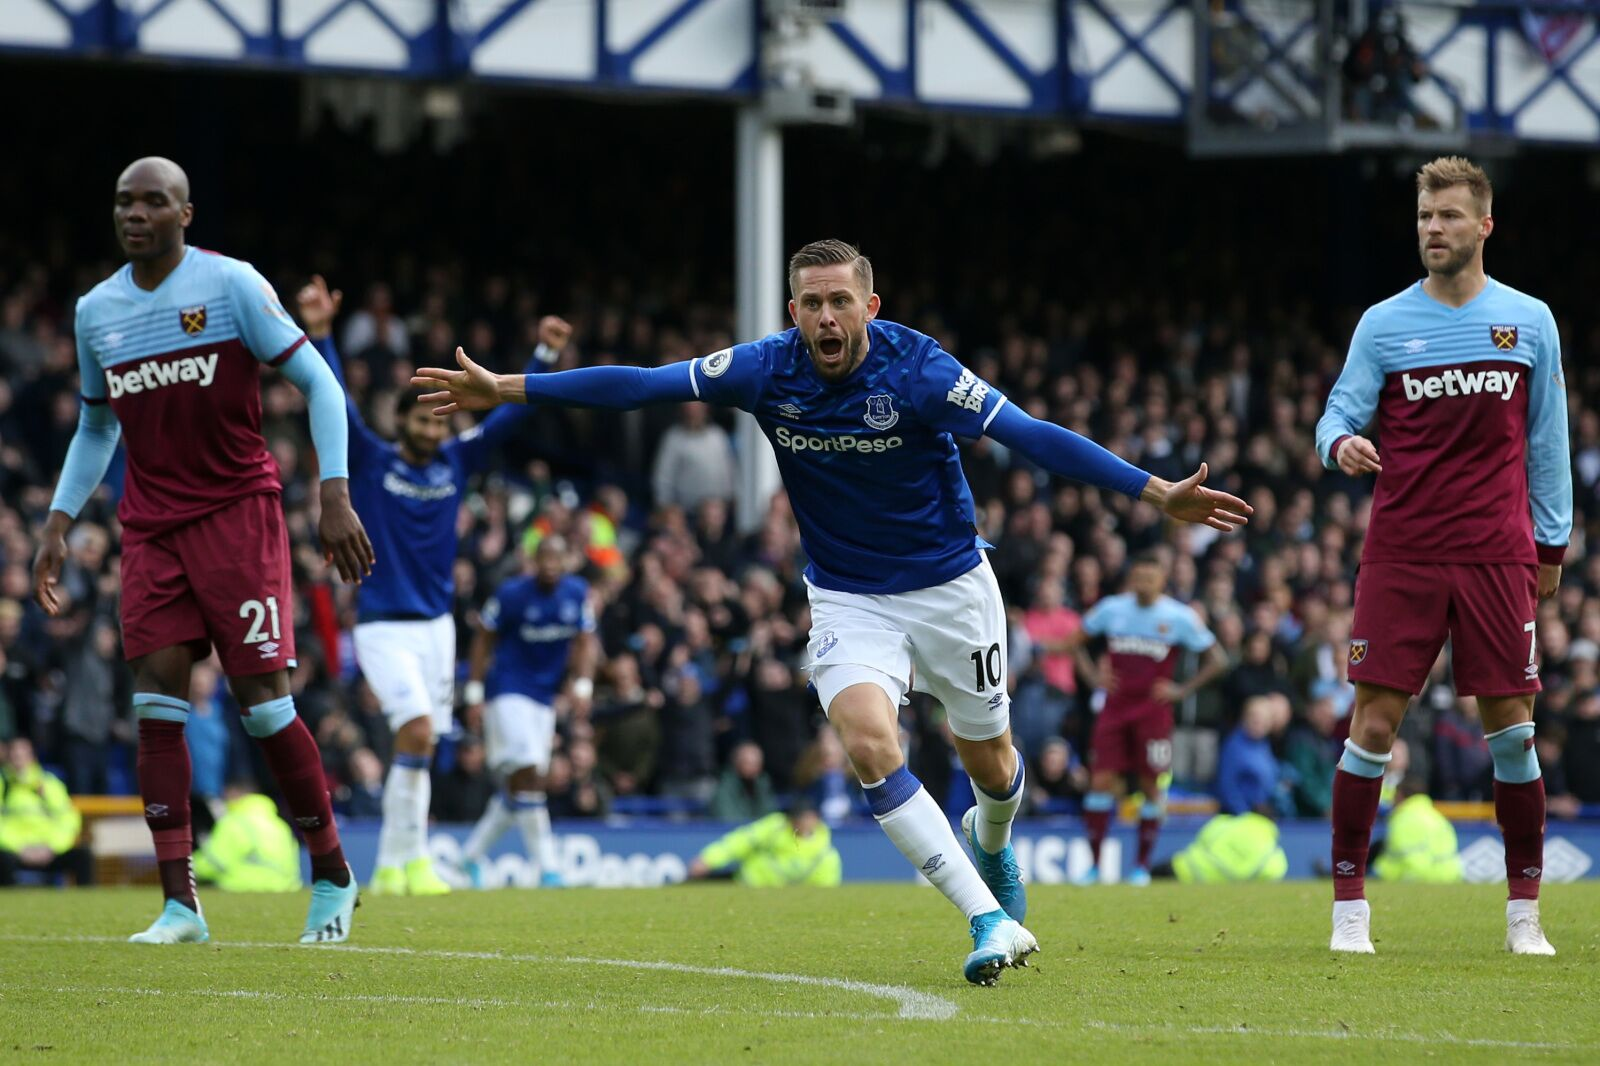 Win gives Everton board and boss breathing space